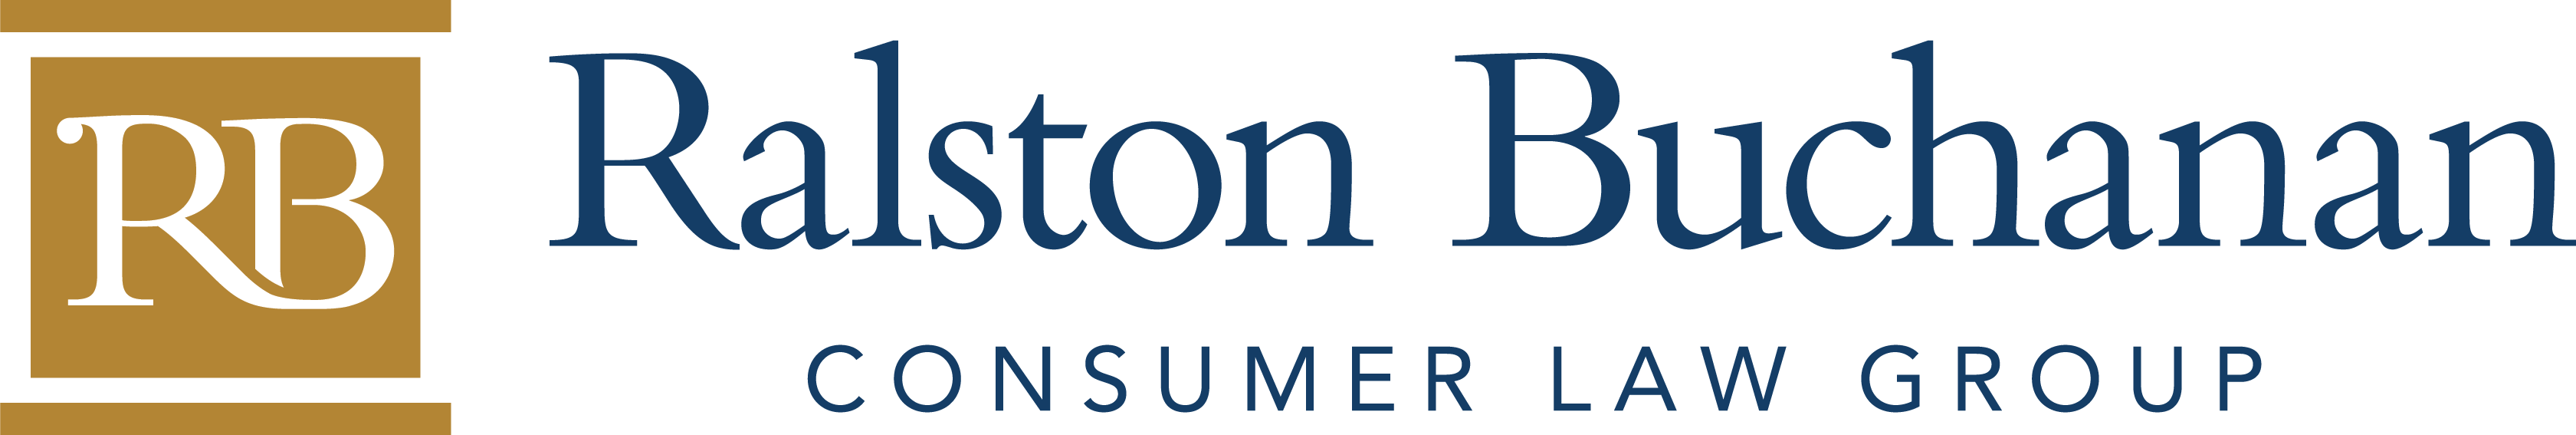 Ralston Buchanan Consumer Law Group